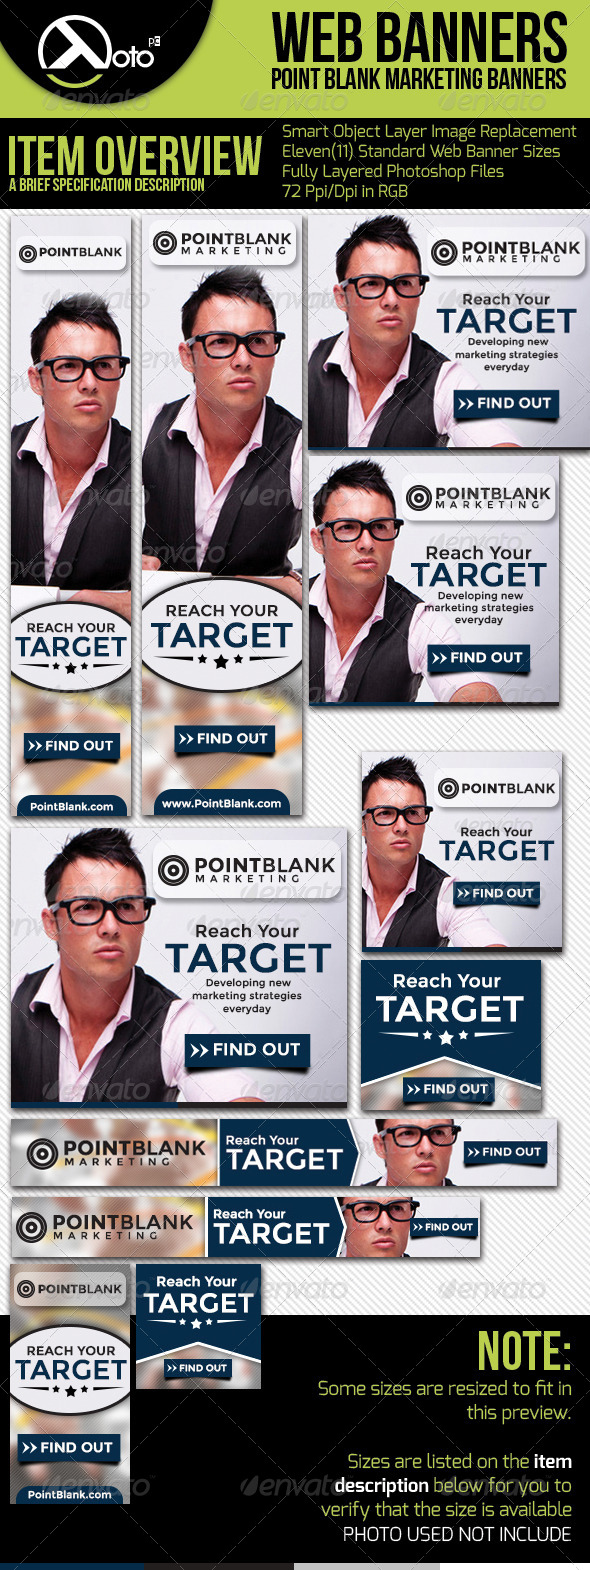 Point Target Marketing Web Banners - Banners & Ads Web Elements